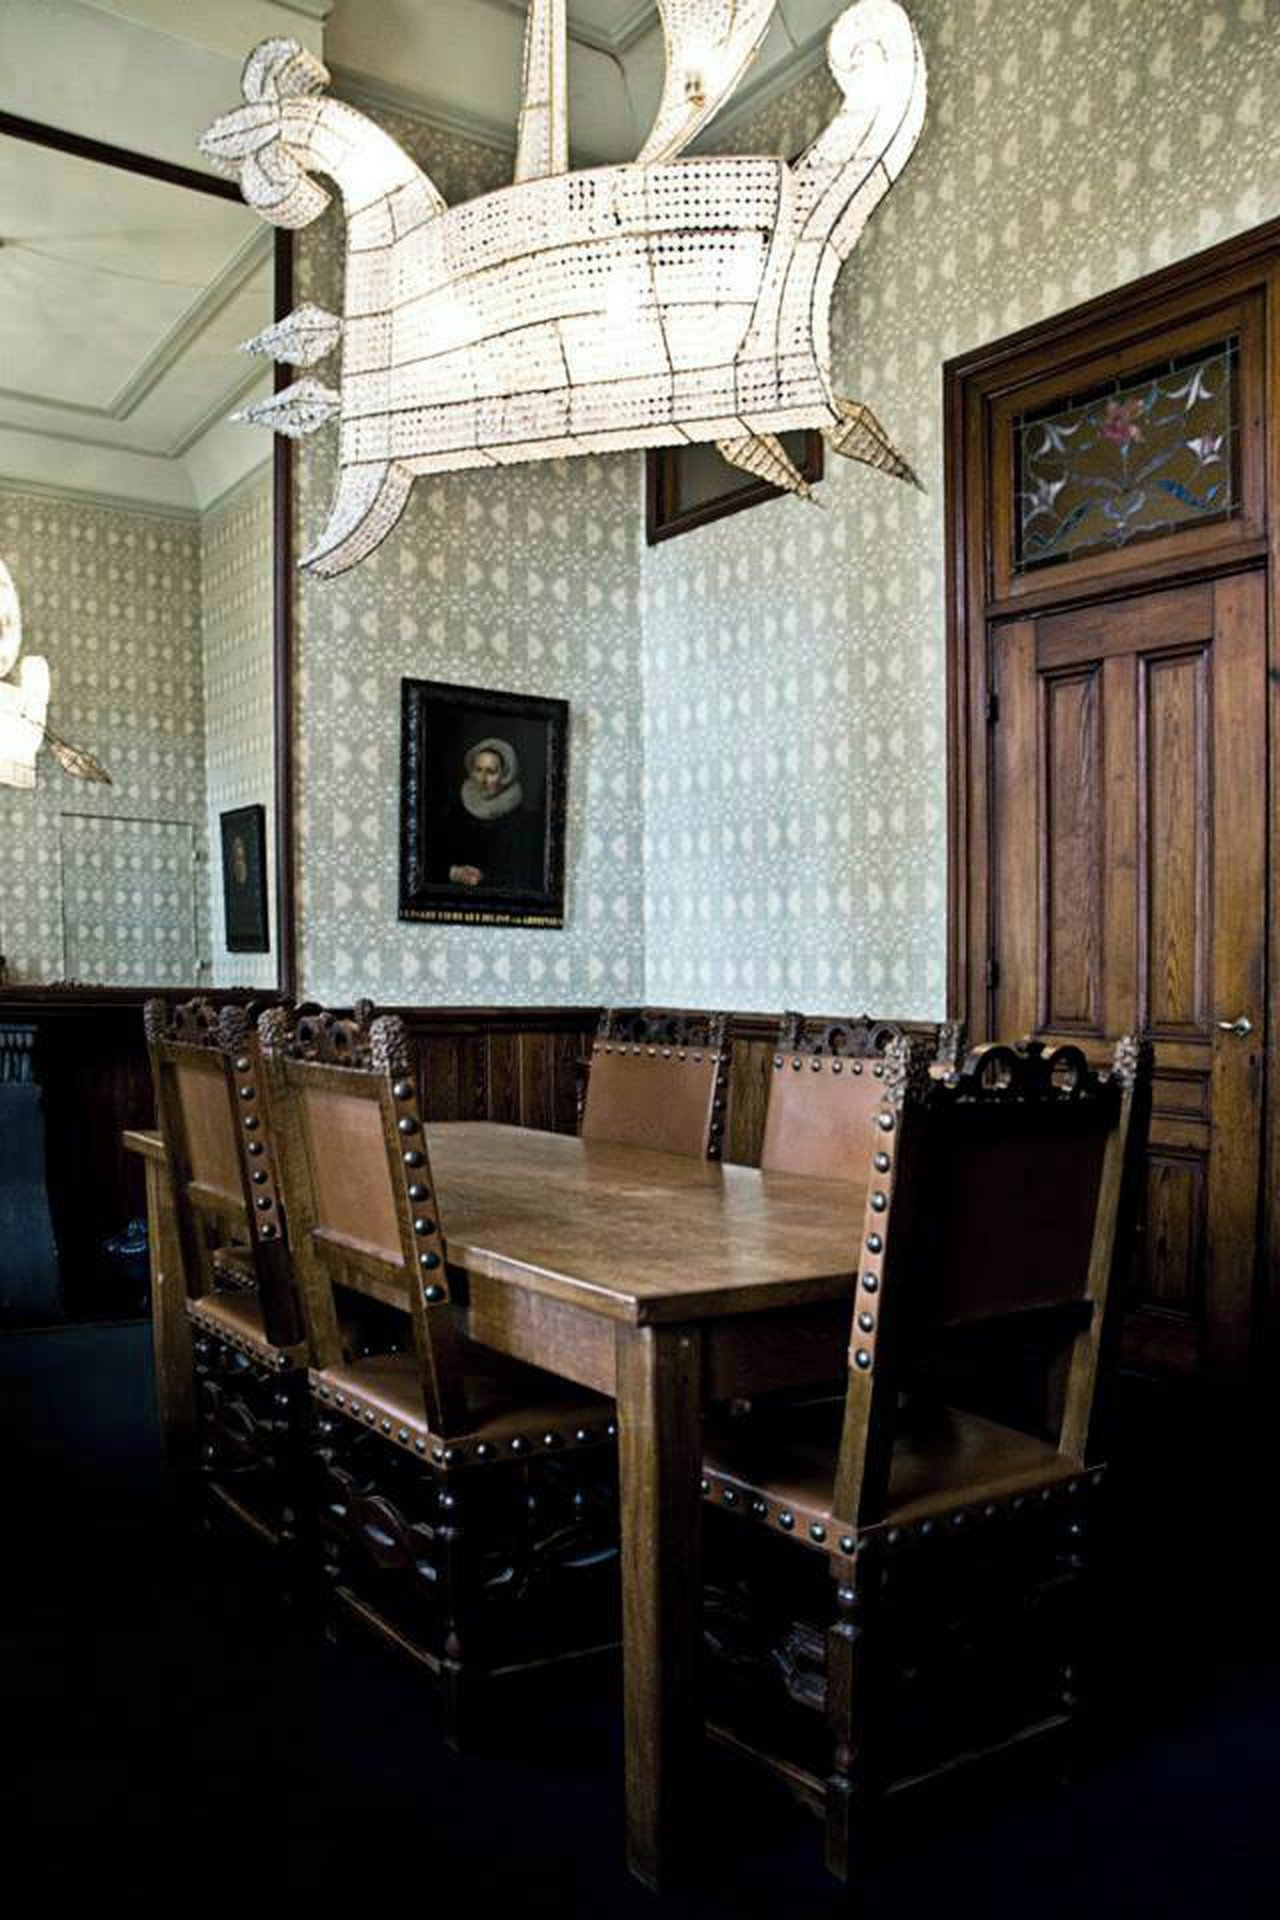 Rotterdam Train station meeting rooms Historic venue Arminius - Commissiekamer image 1